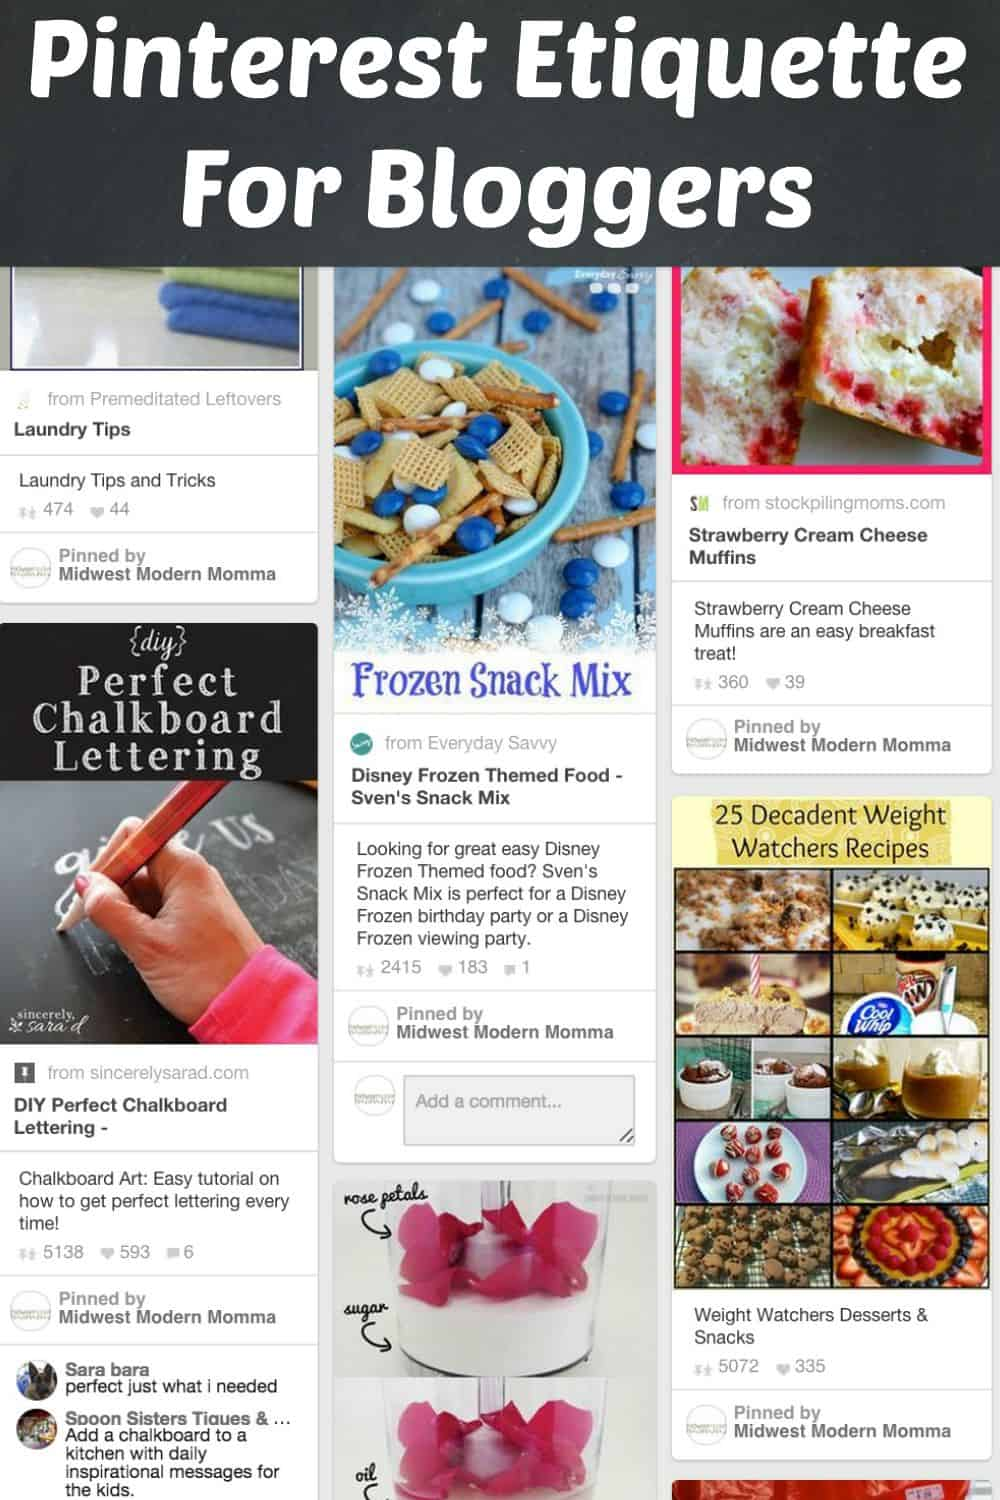 Pinterest Etiquette for Bloggers: Do's & Don'ts for Using Group Boards